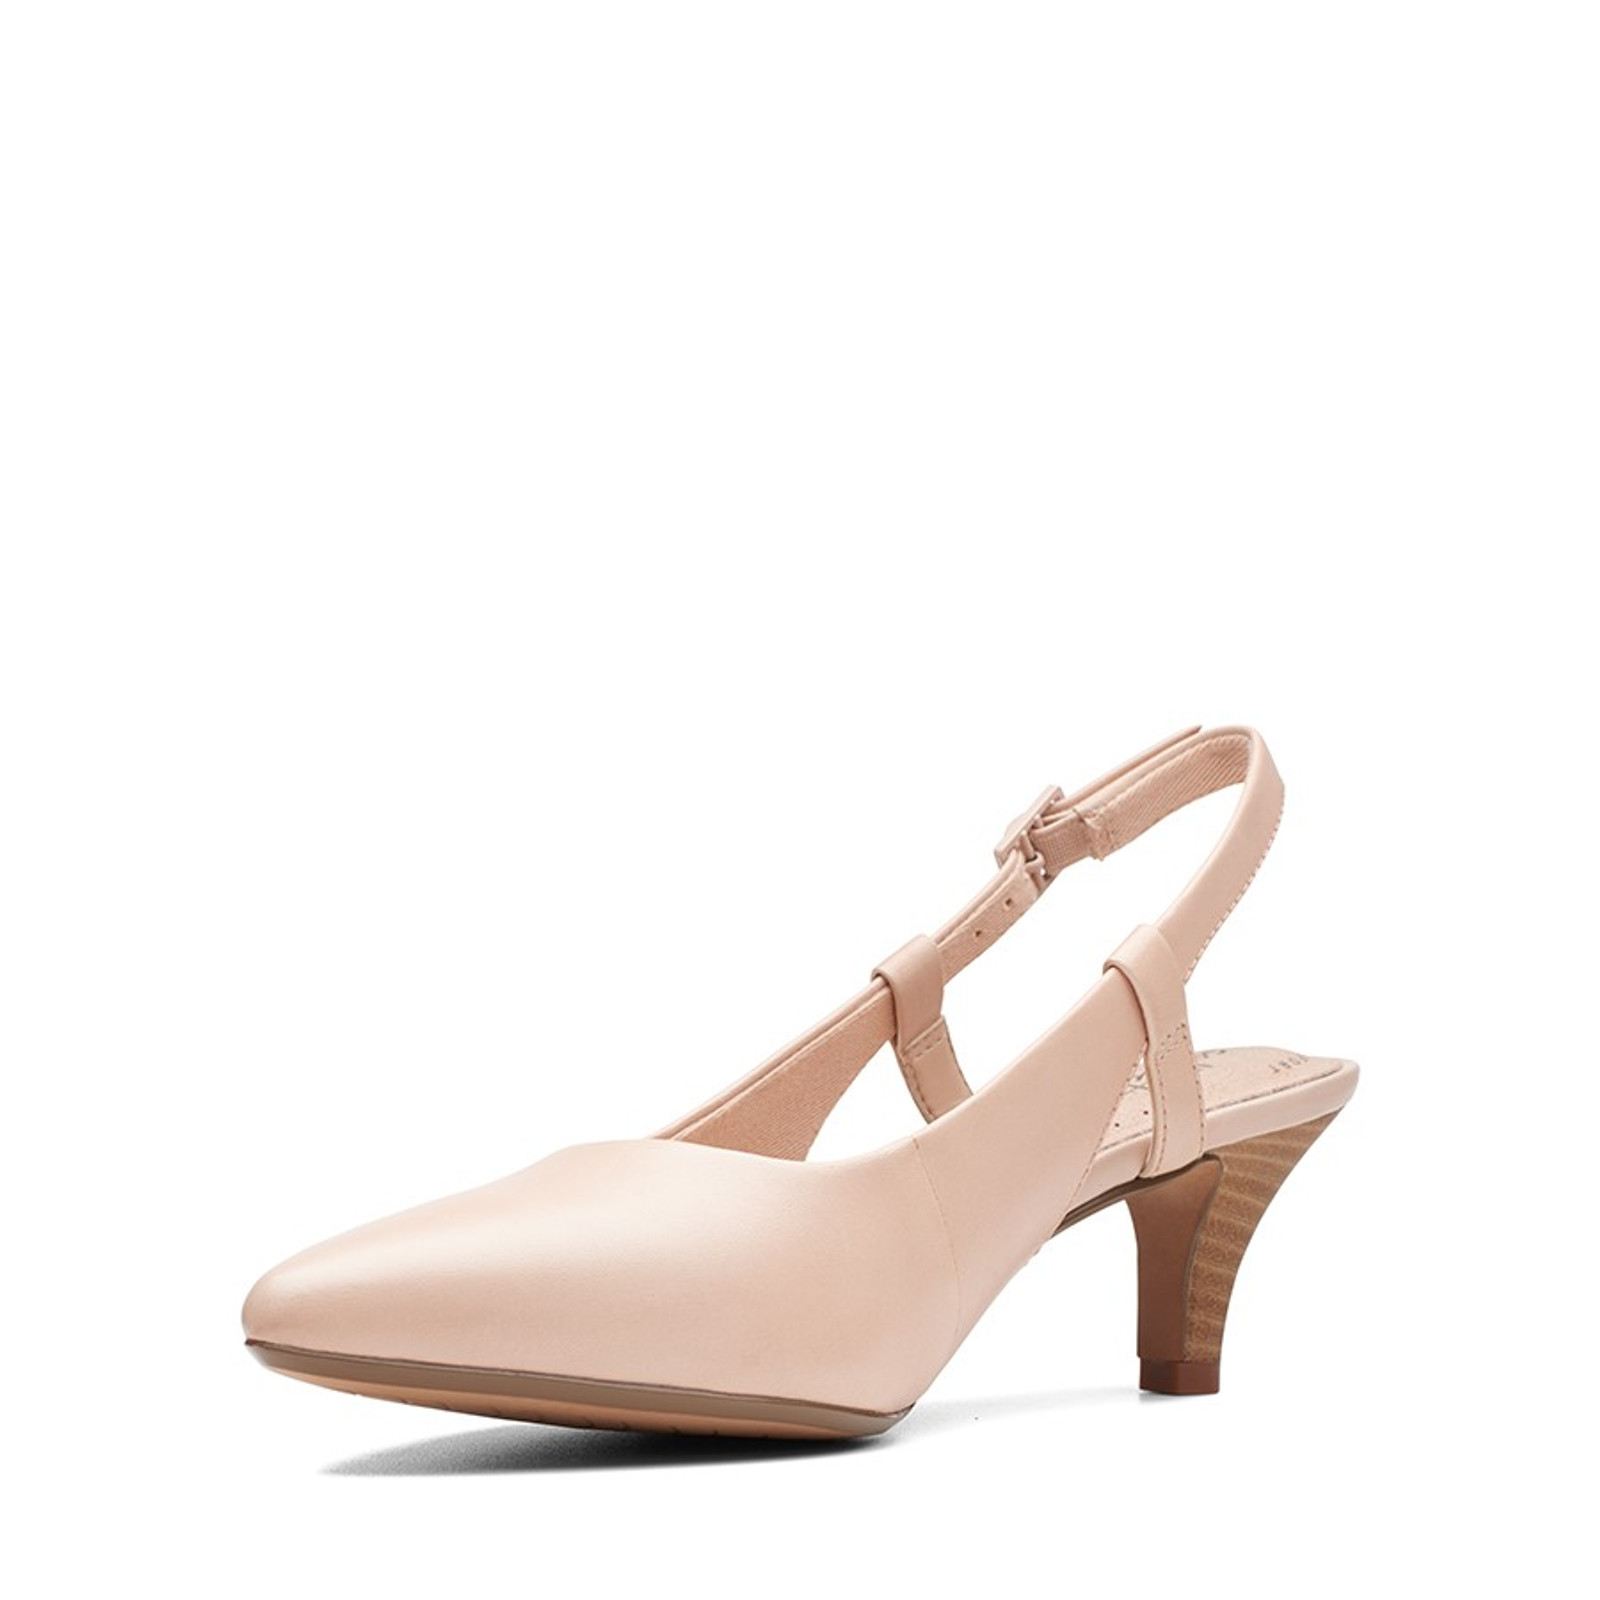 Clarks Womens LINVALE LOOP Nude Leather